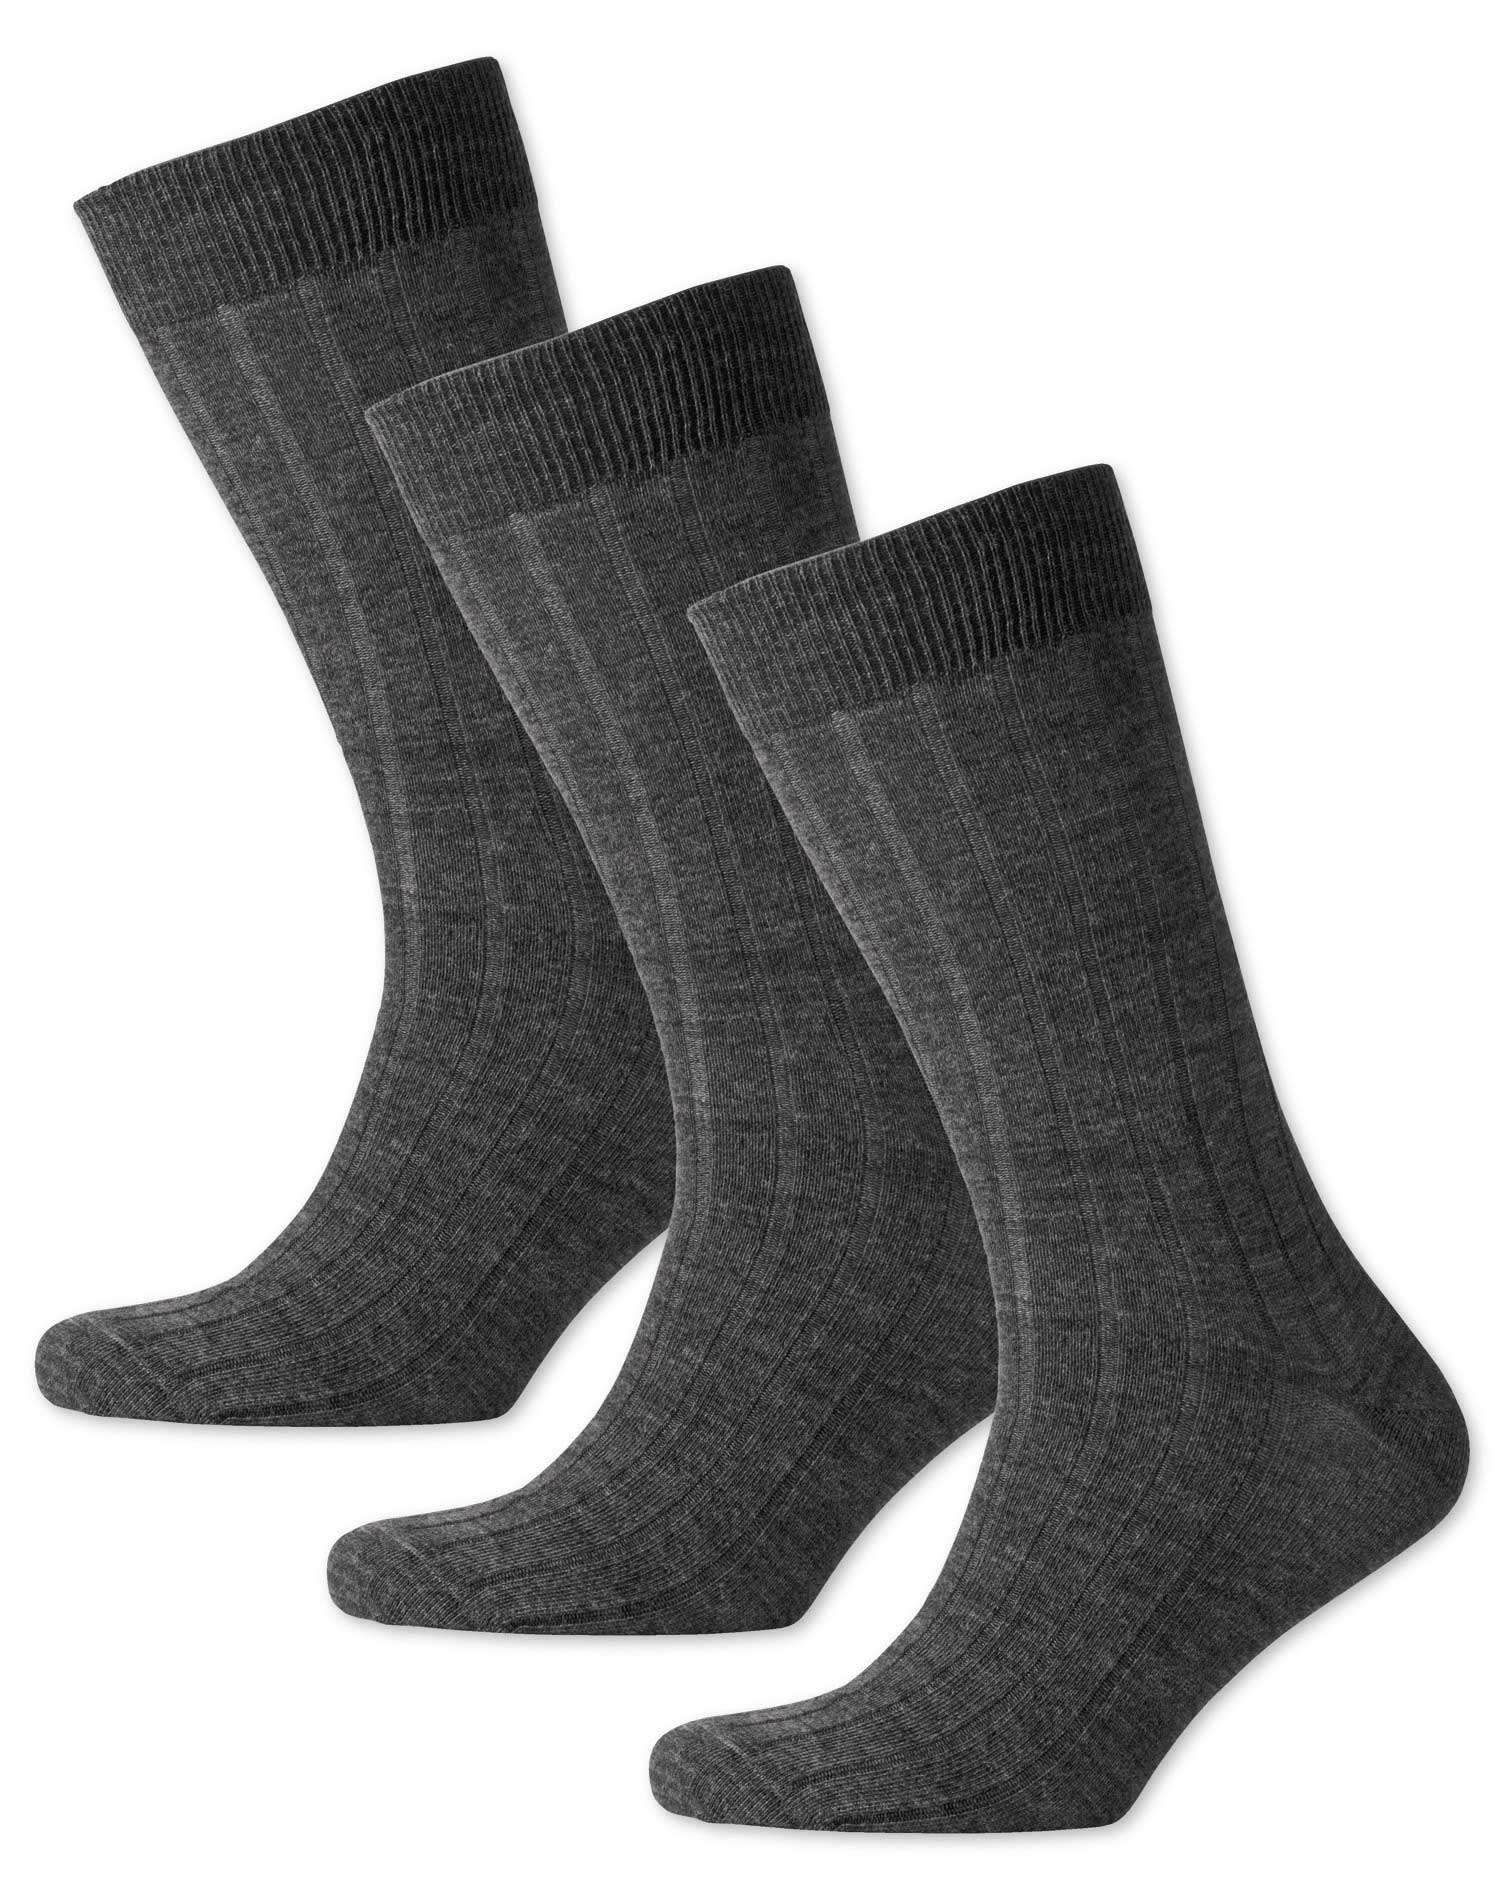 Grey Wool Rich 3 Pack Socks Size Large by Charles Tyrwhitt